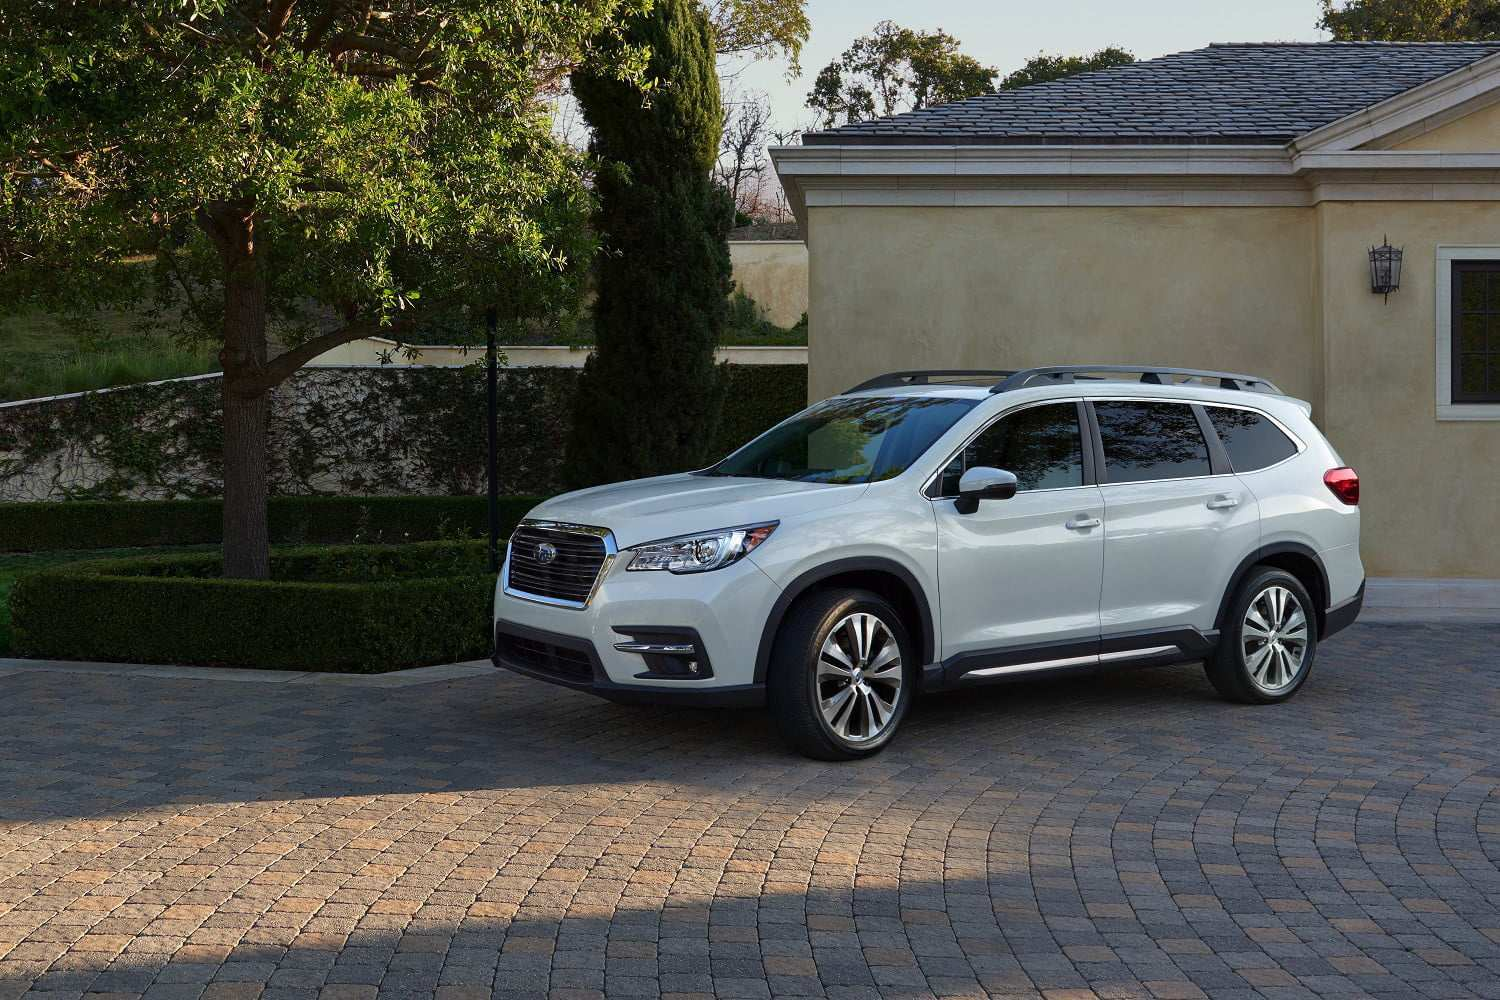 96 Gallery of 2019 Subaru Ascent Towing Capacity Performance by 2019 Subaru Ascent Towing Capacity